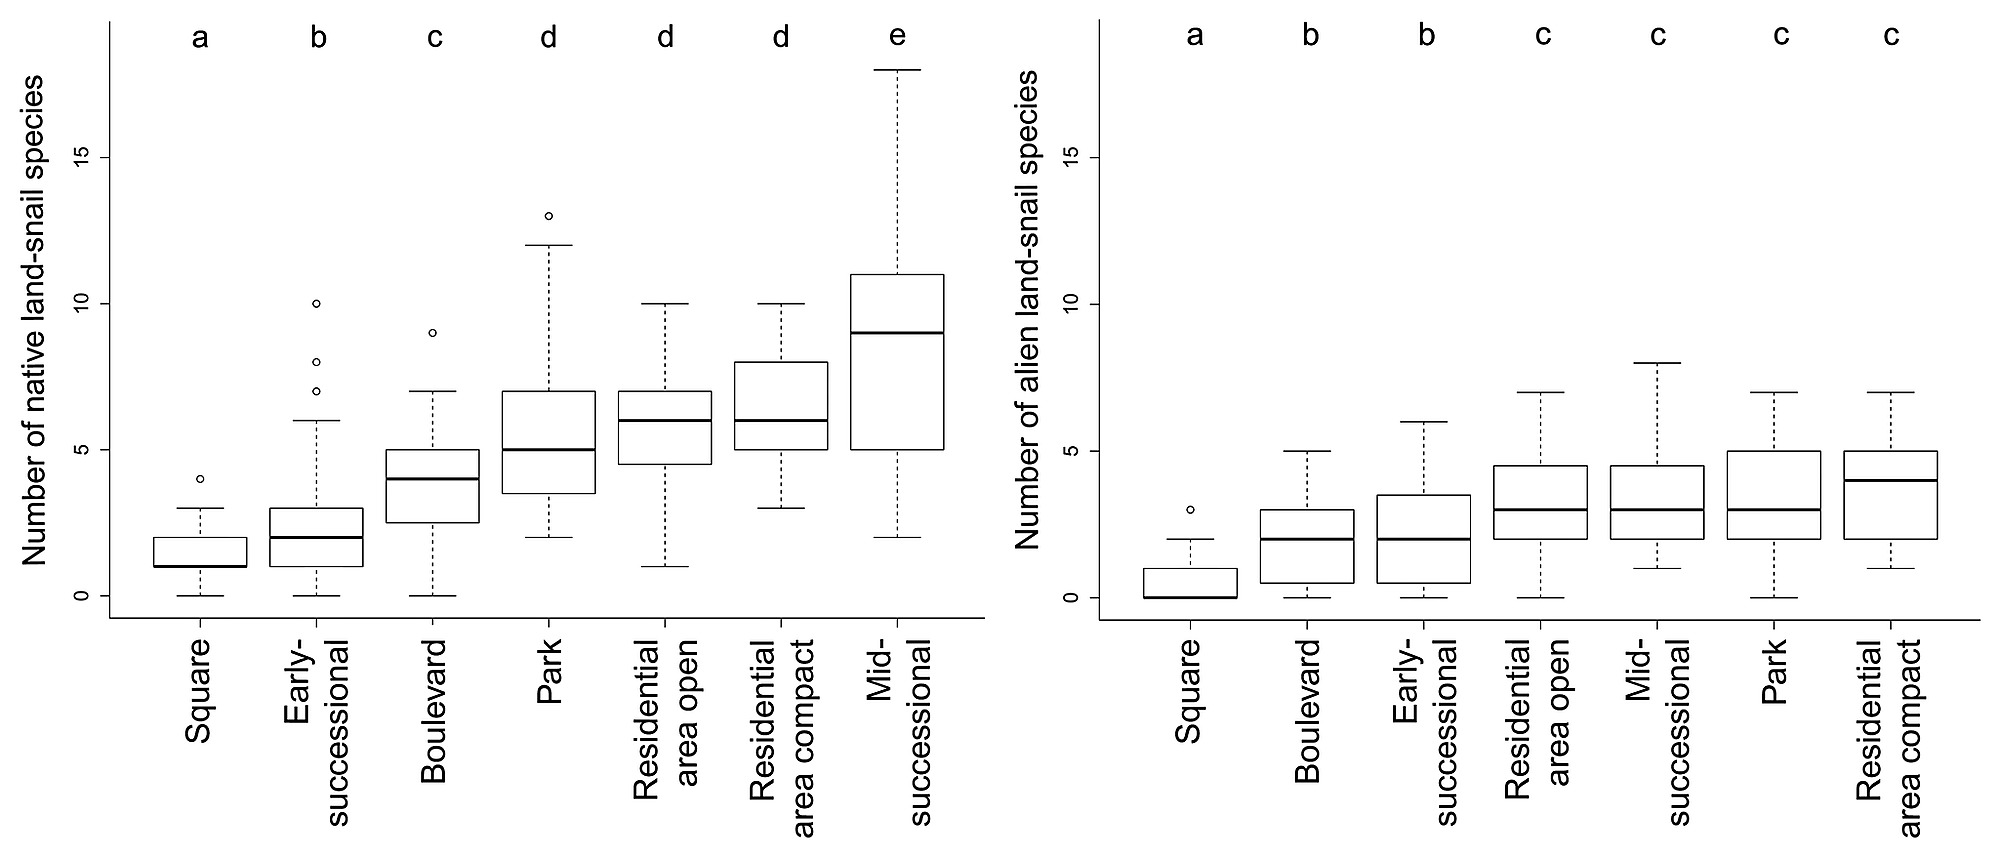 hight resolution of variation in numbers of native left and alien right land snail species among the studied habitat types